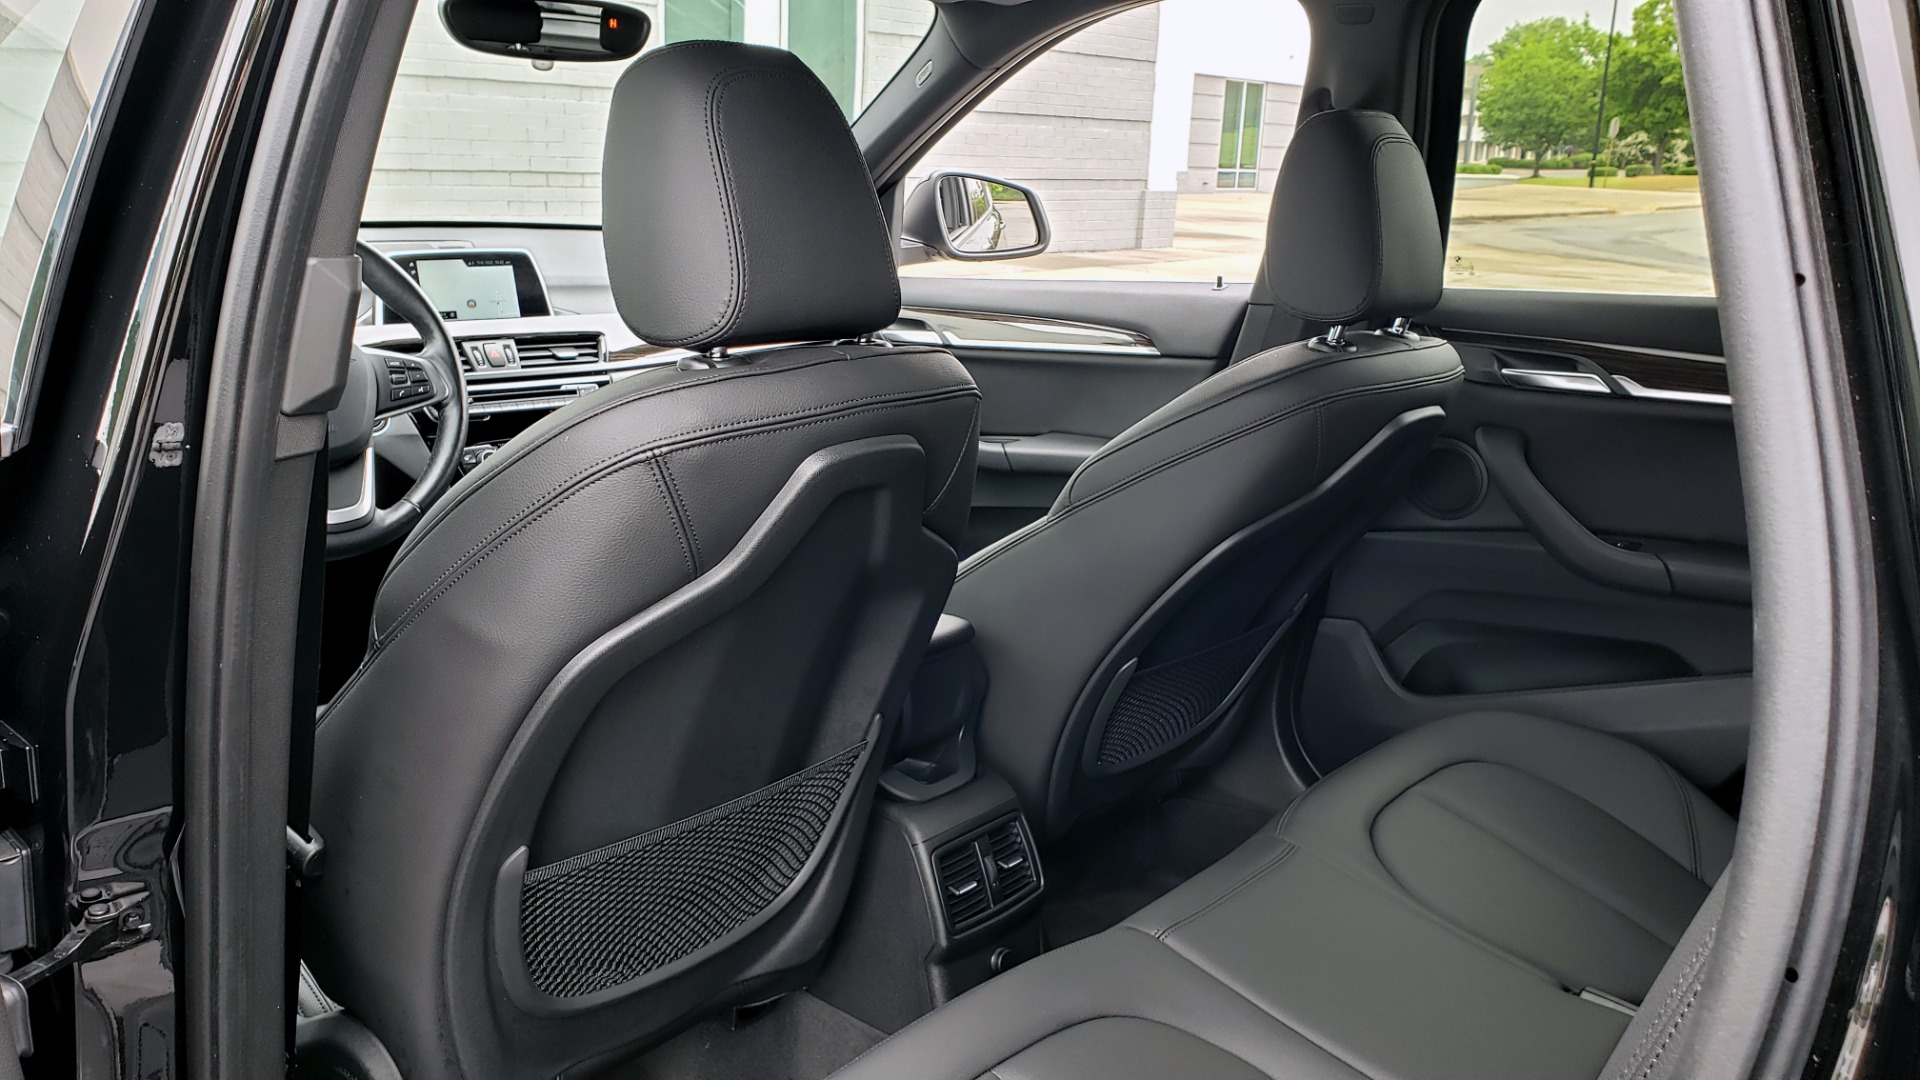 Used 2018 BMW X1 XDRIVE28I / CONV PKG / NAV / HTD STS / PANO-ROOF / REARVIEW for sale $30,995 at Formula Imports in Charlotte NC 28227 64